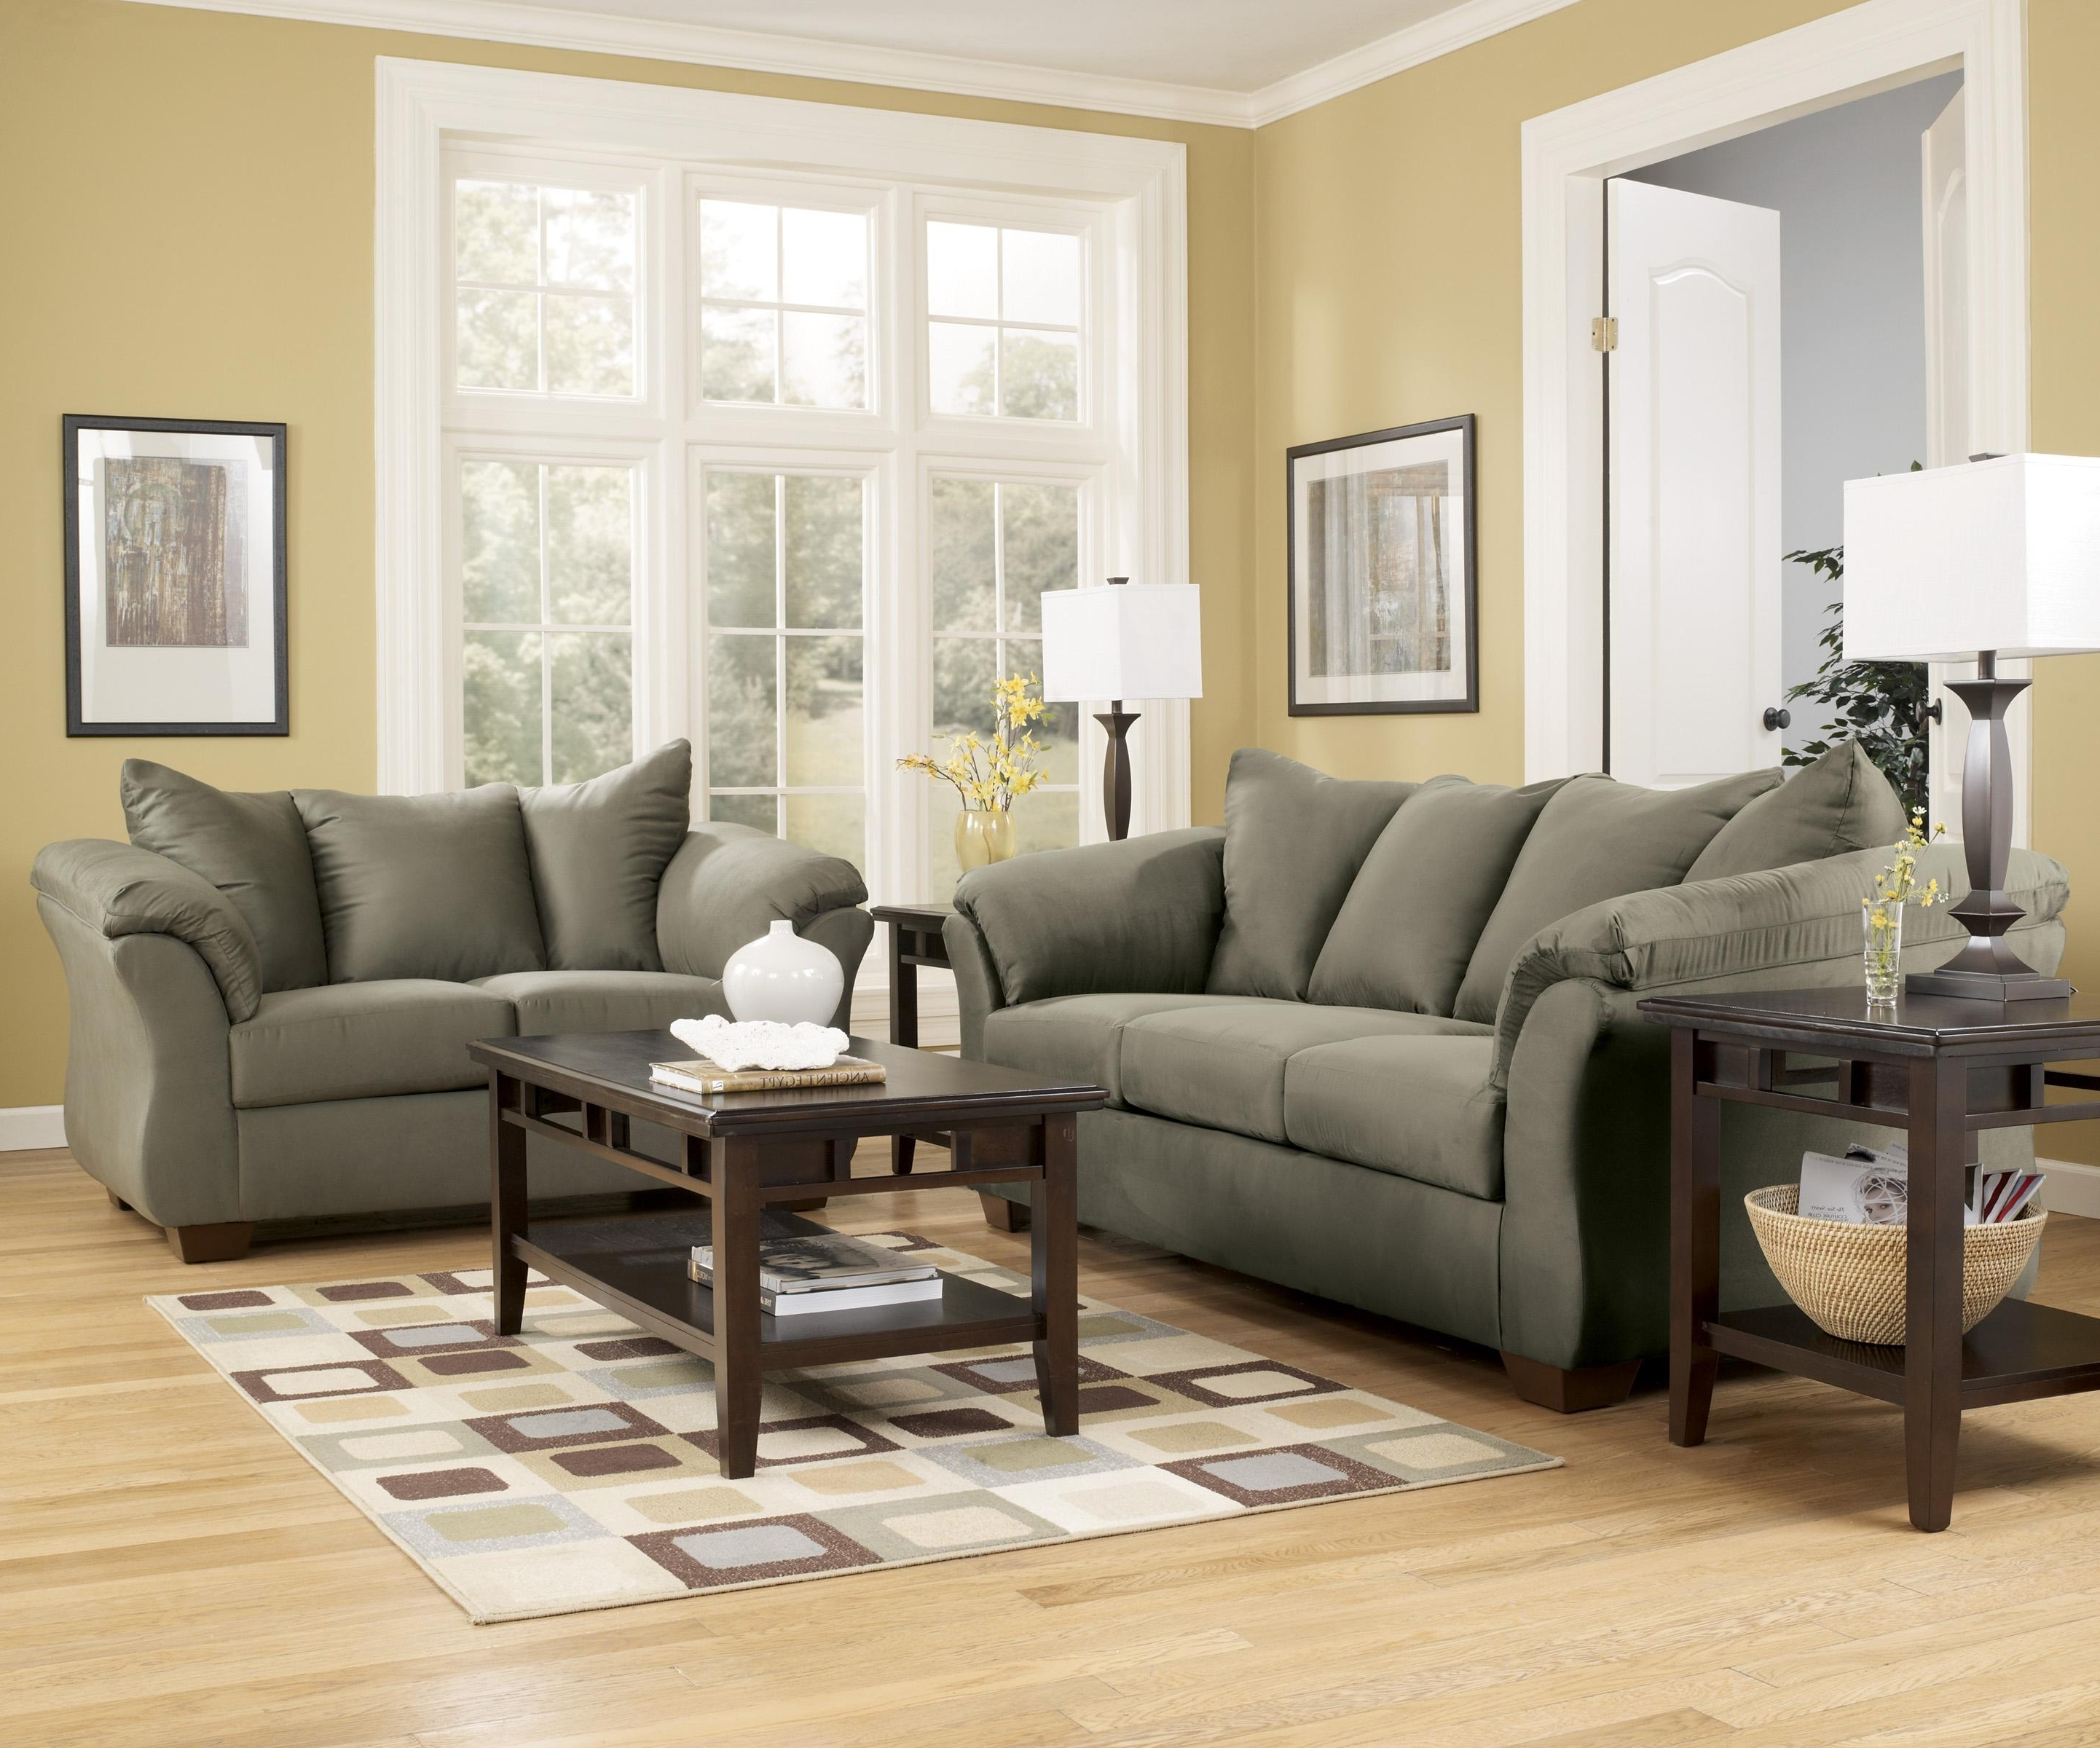 Best And Newest 102X102 Sectional Sofas In Signature Designashley Darcy – Sage Contemporary Sectional (View 12 of 15)